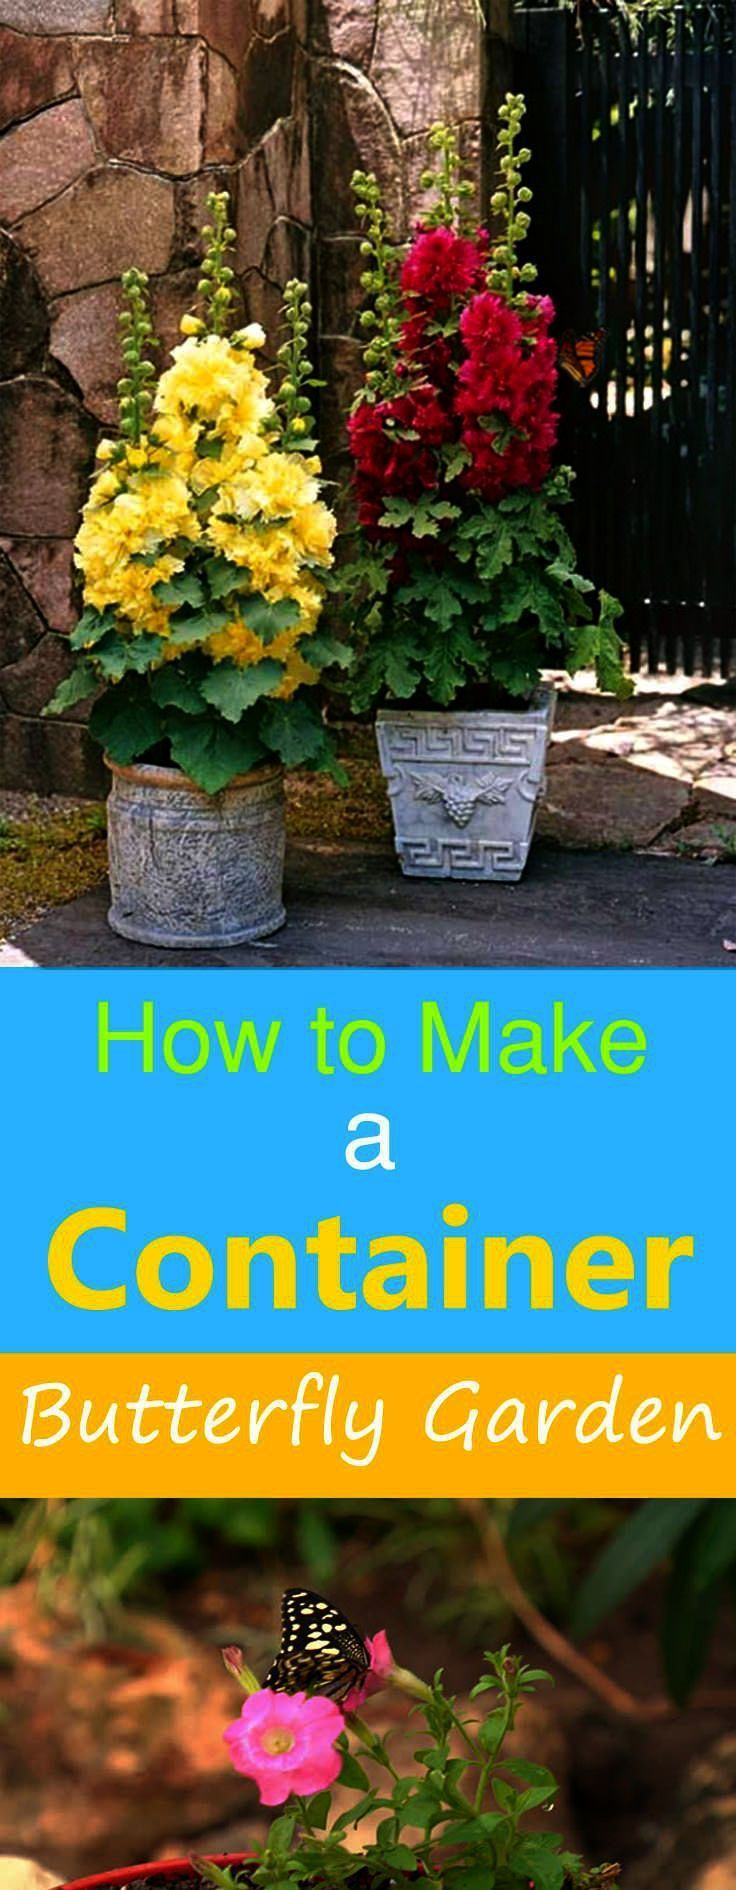 Container Gardening Ideas For Part Shade following Landscape & Gardening Expo or Landscape Gardening On Slopes across Landscape Gardening Plans #shadecontainergardenideas